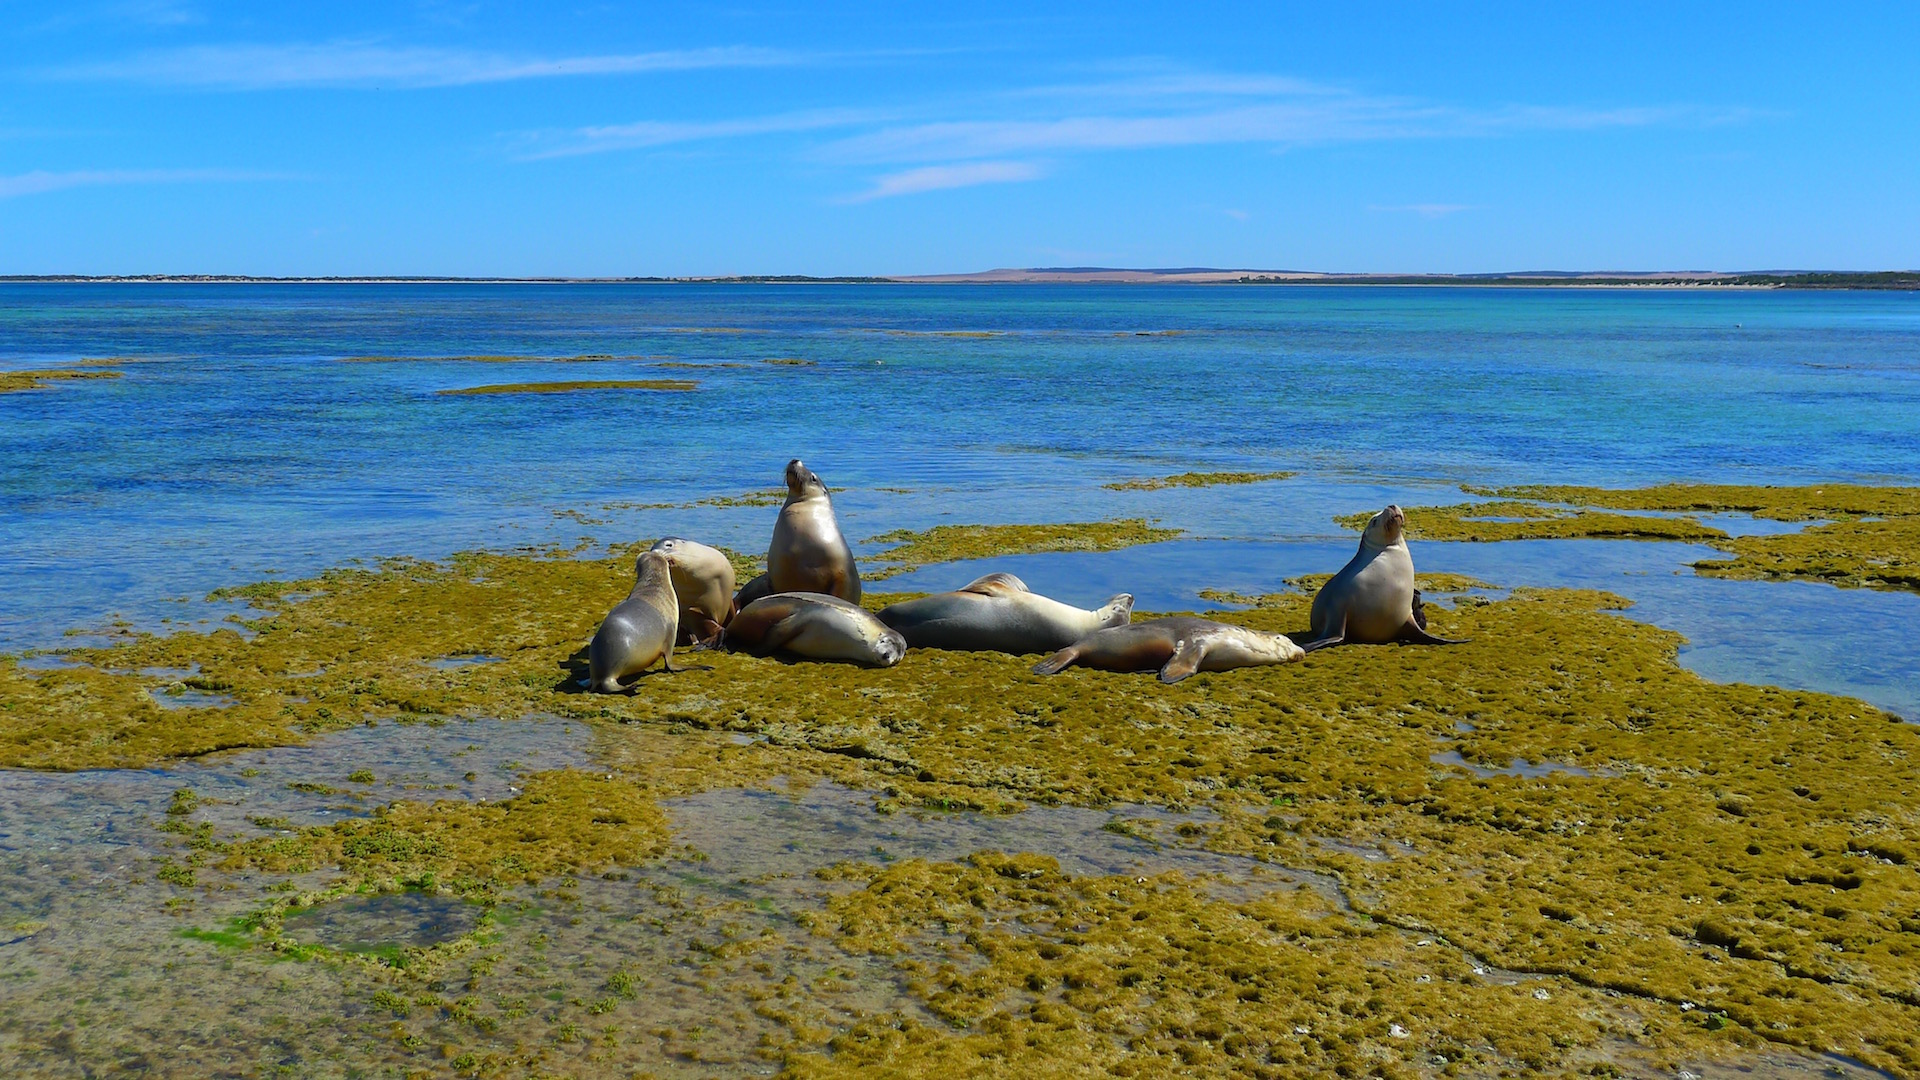 Seals at Eyre Peninsula, SA